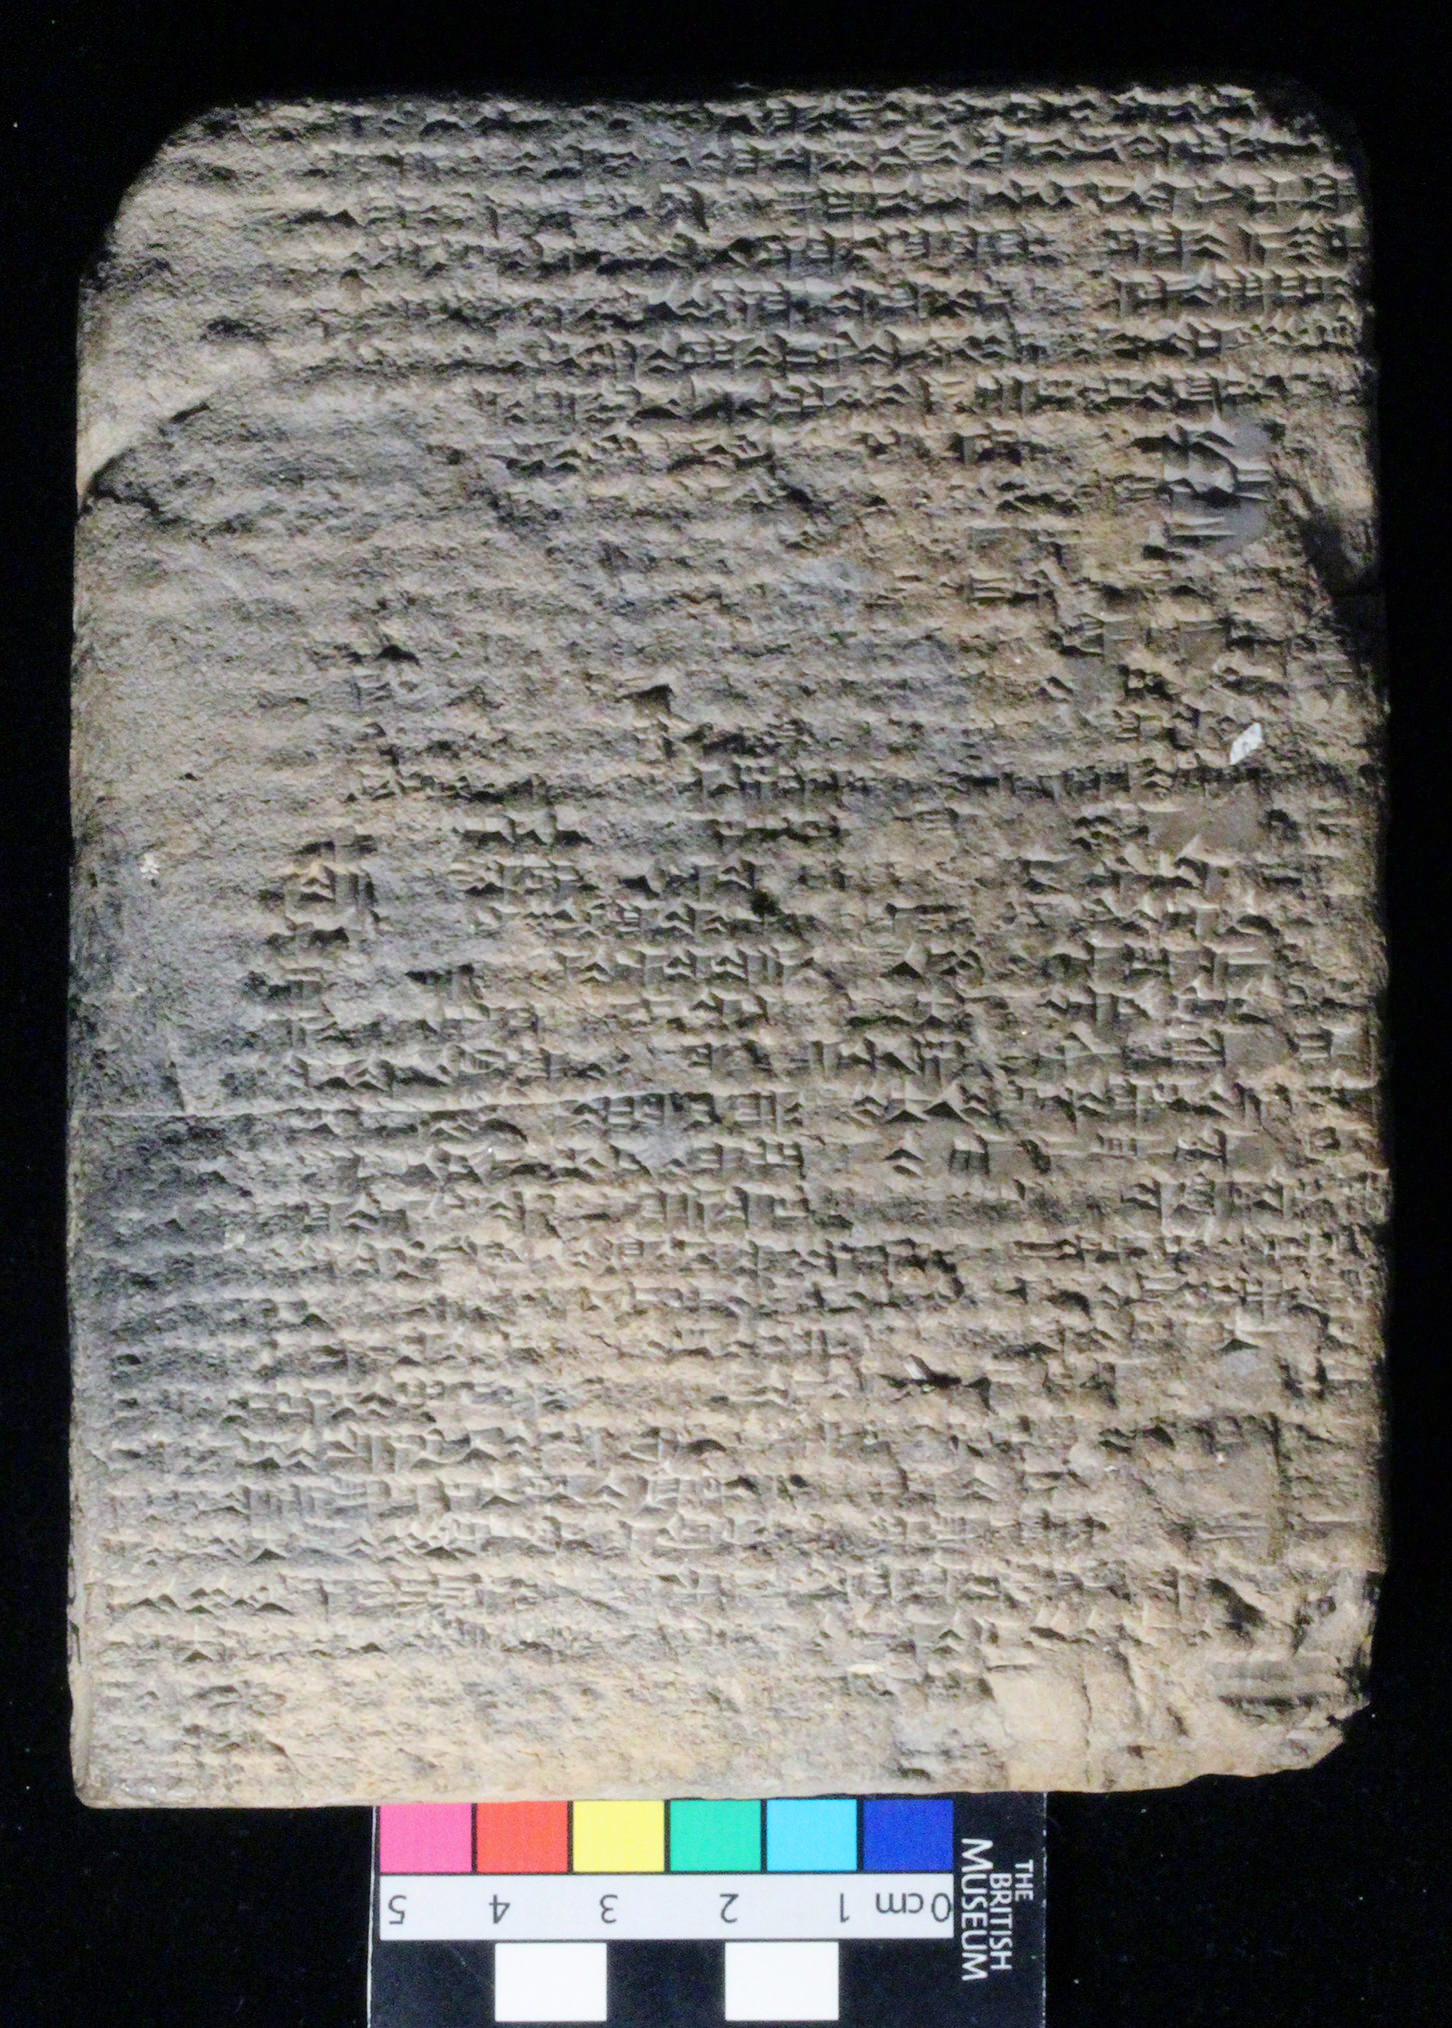 The latest datable Mesopotamian text commentary